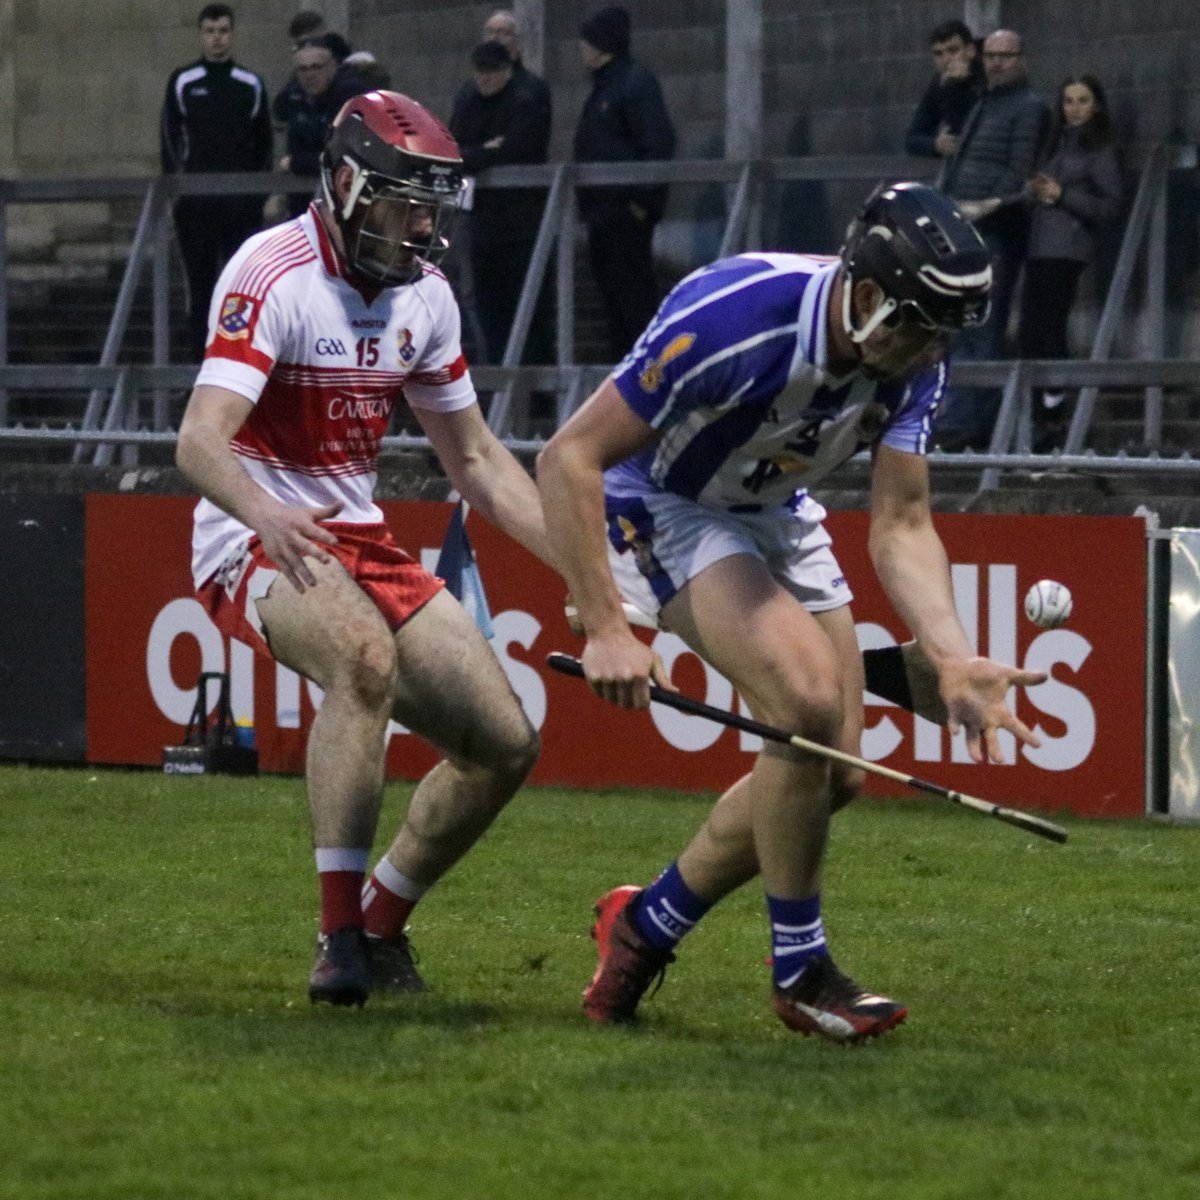 test Twitter Media - Dublin Senior A Hurling Championship Round 2  Result - @WColmcille: 2-17 (23) @Bodengaa: 2-18 (24)  #DSHCA https://t.co/L6G3uOqwO2